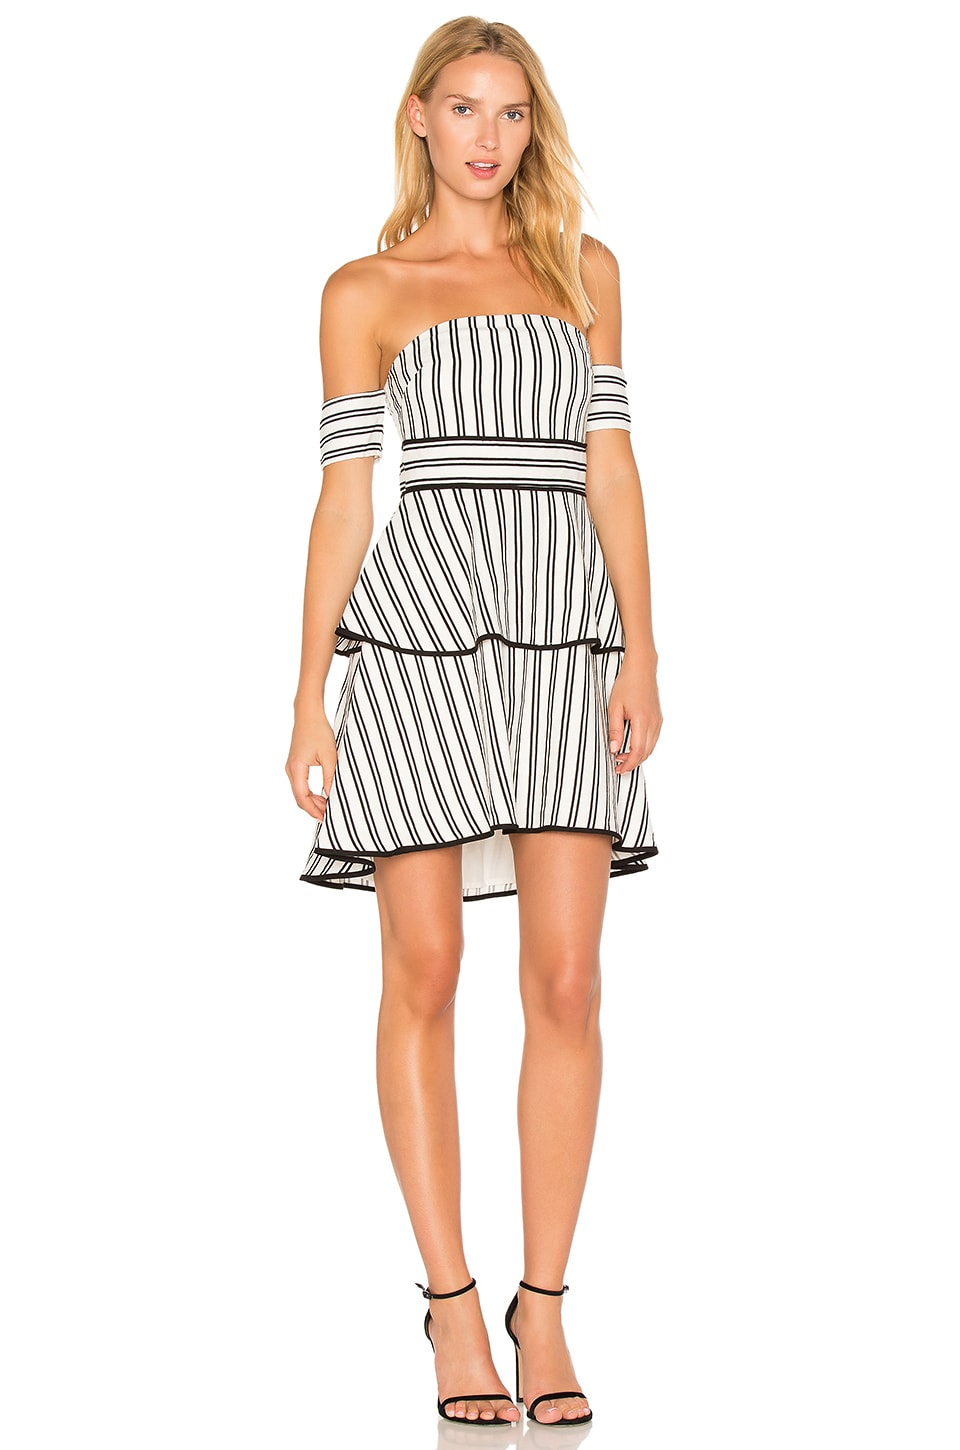 Endless Rose Striped Off the Shoulder High Low Dress in Black & White Combo